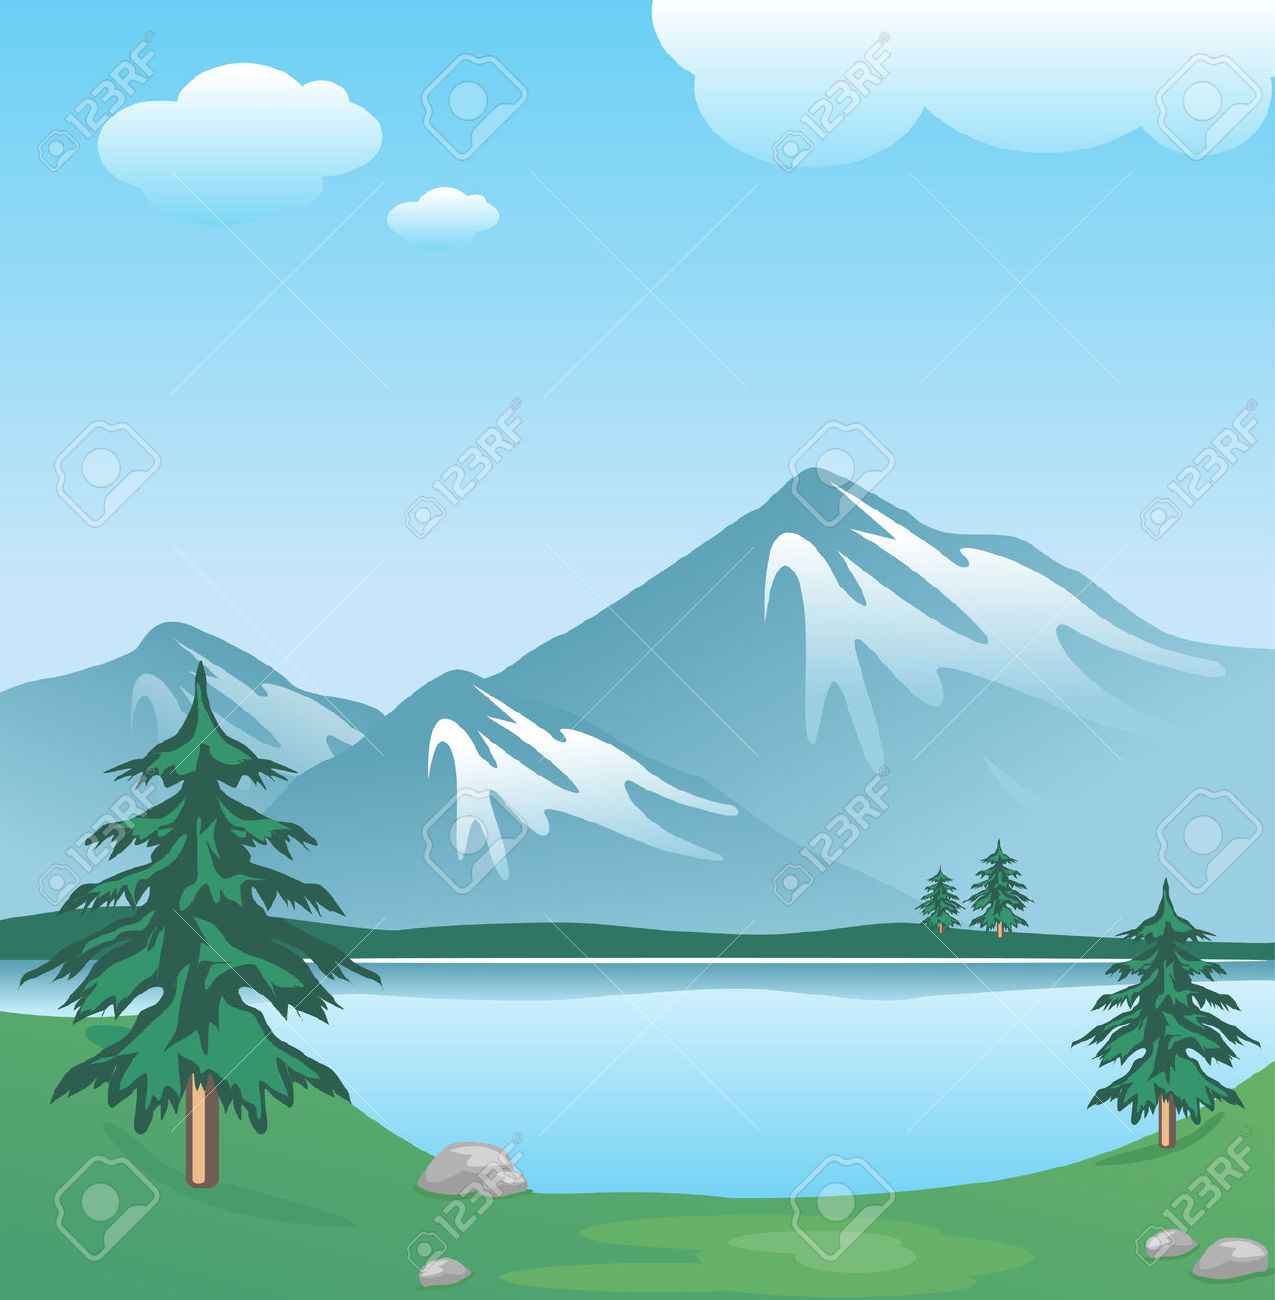 lake clipart background